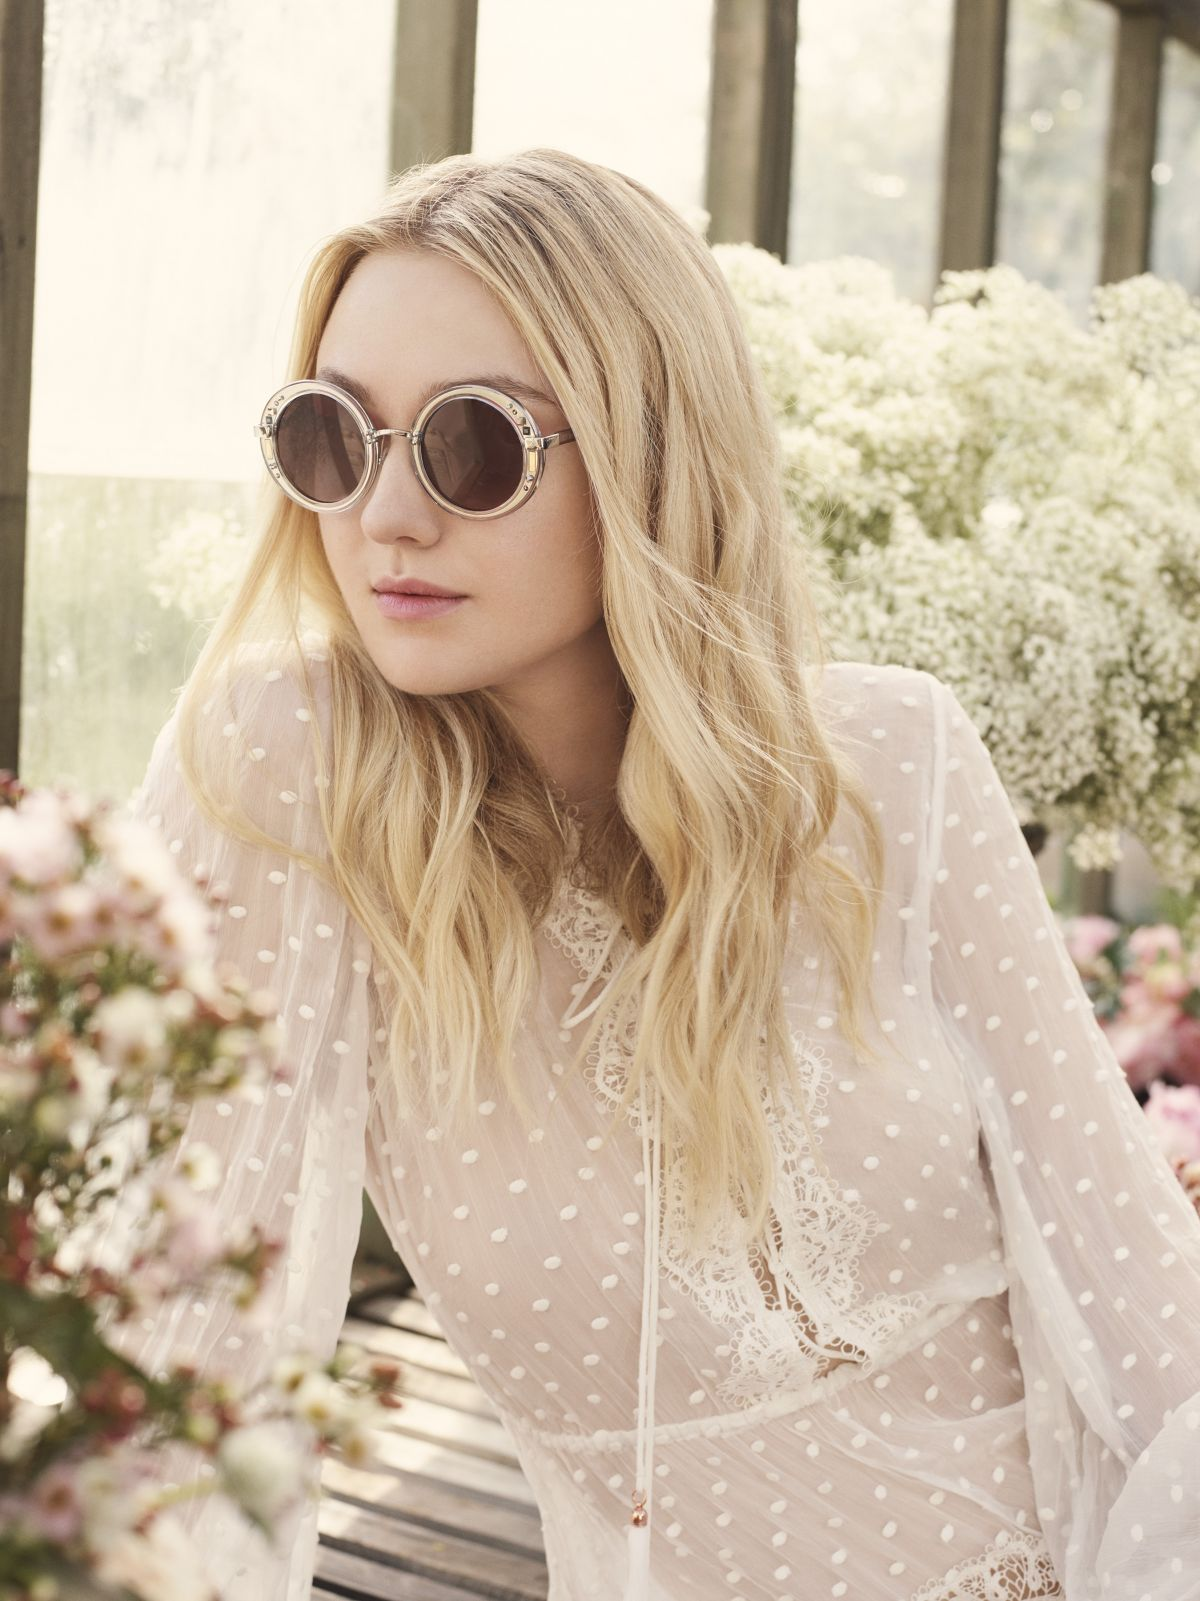 DAKOTA FANNING for Jim...